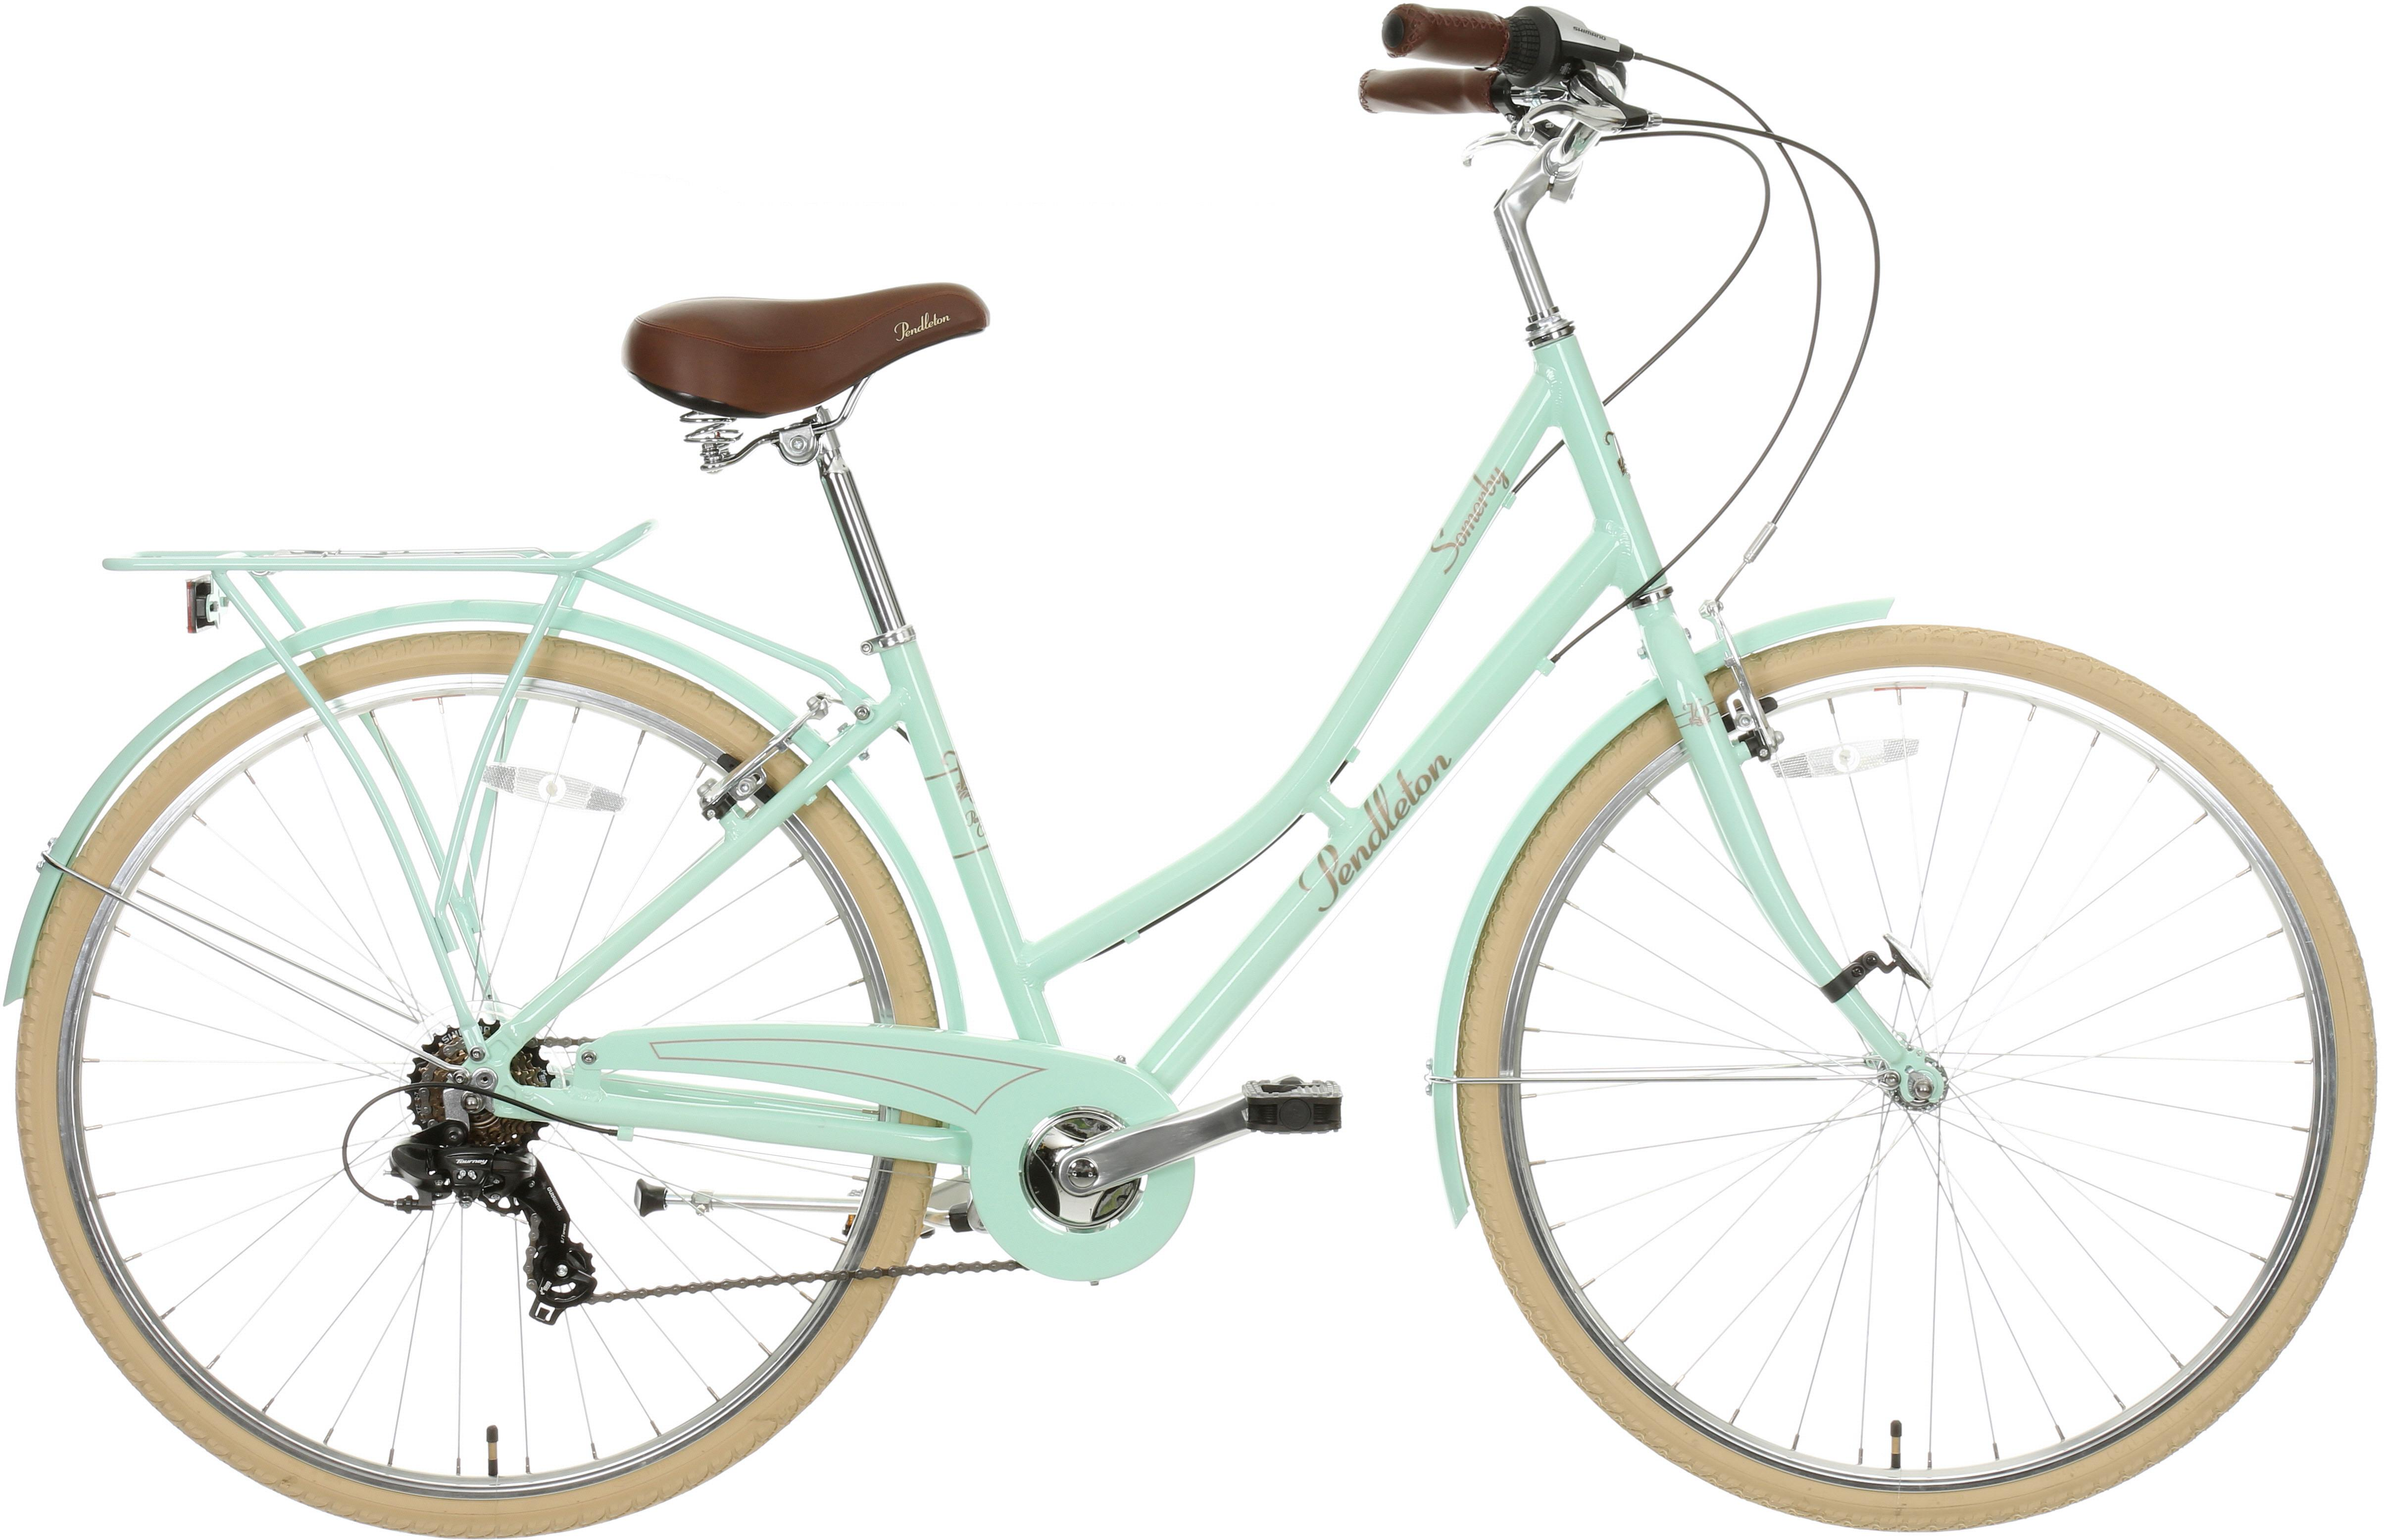 Pendleton Somerby Hybrid Bike - Mint 19 inch